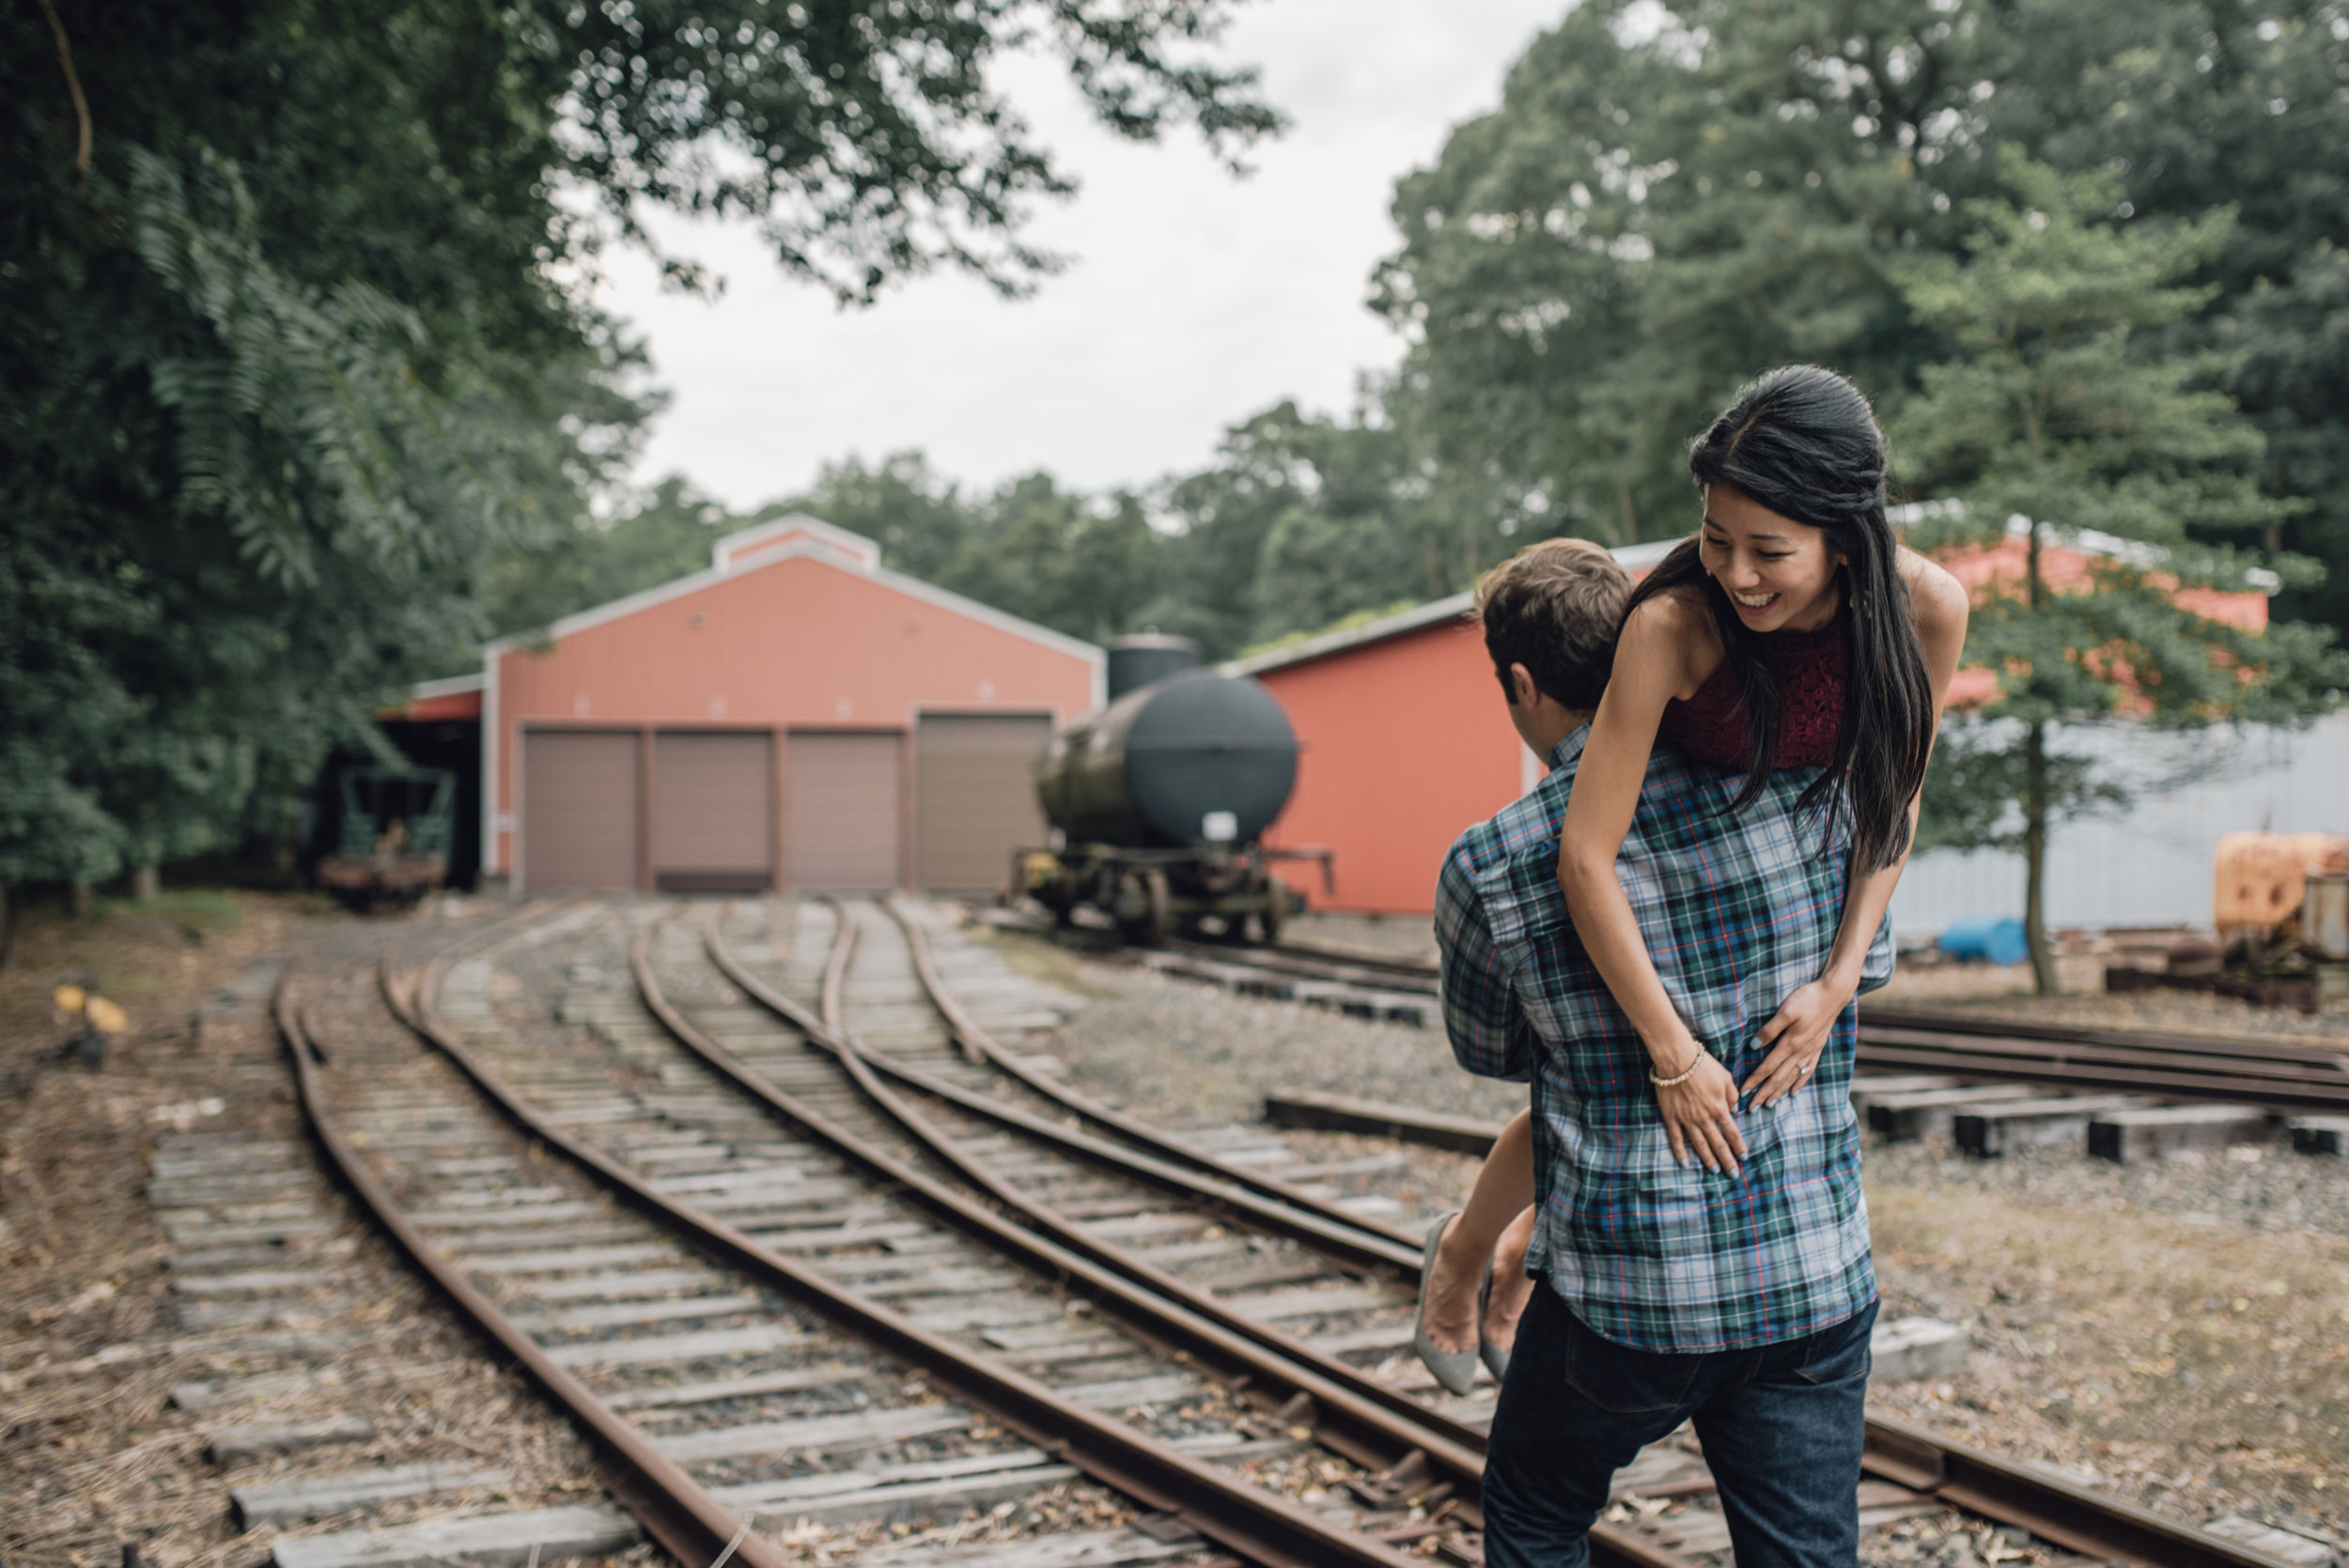 Main and Simple Photography_2017_Engagement_NJ_M+G-288.jpg